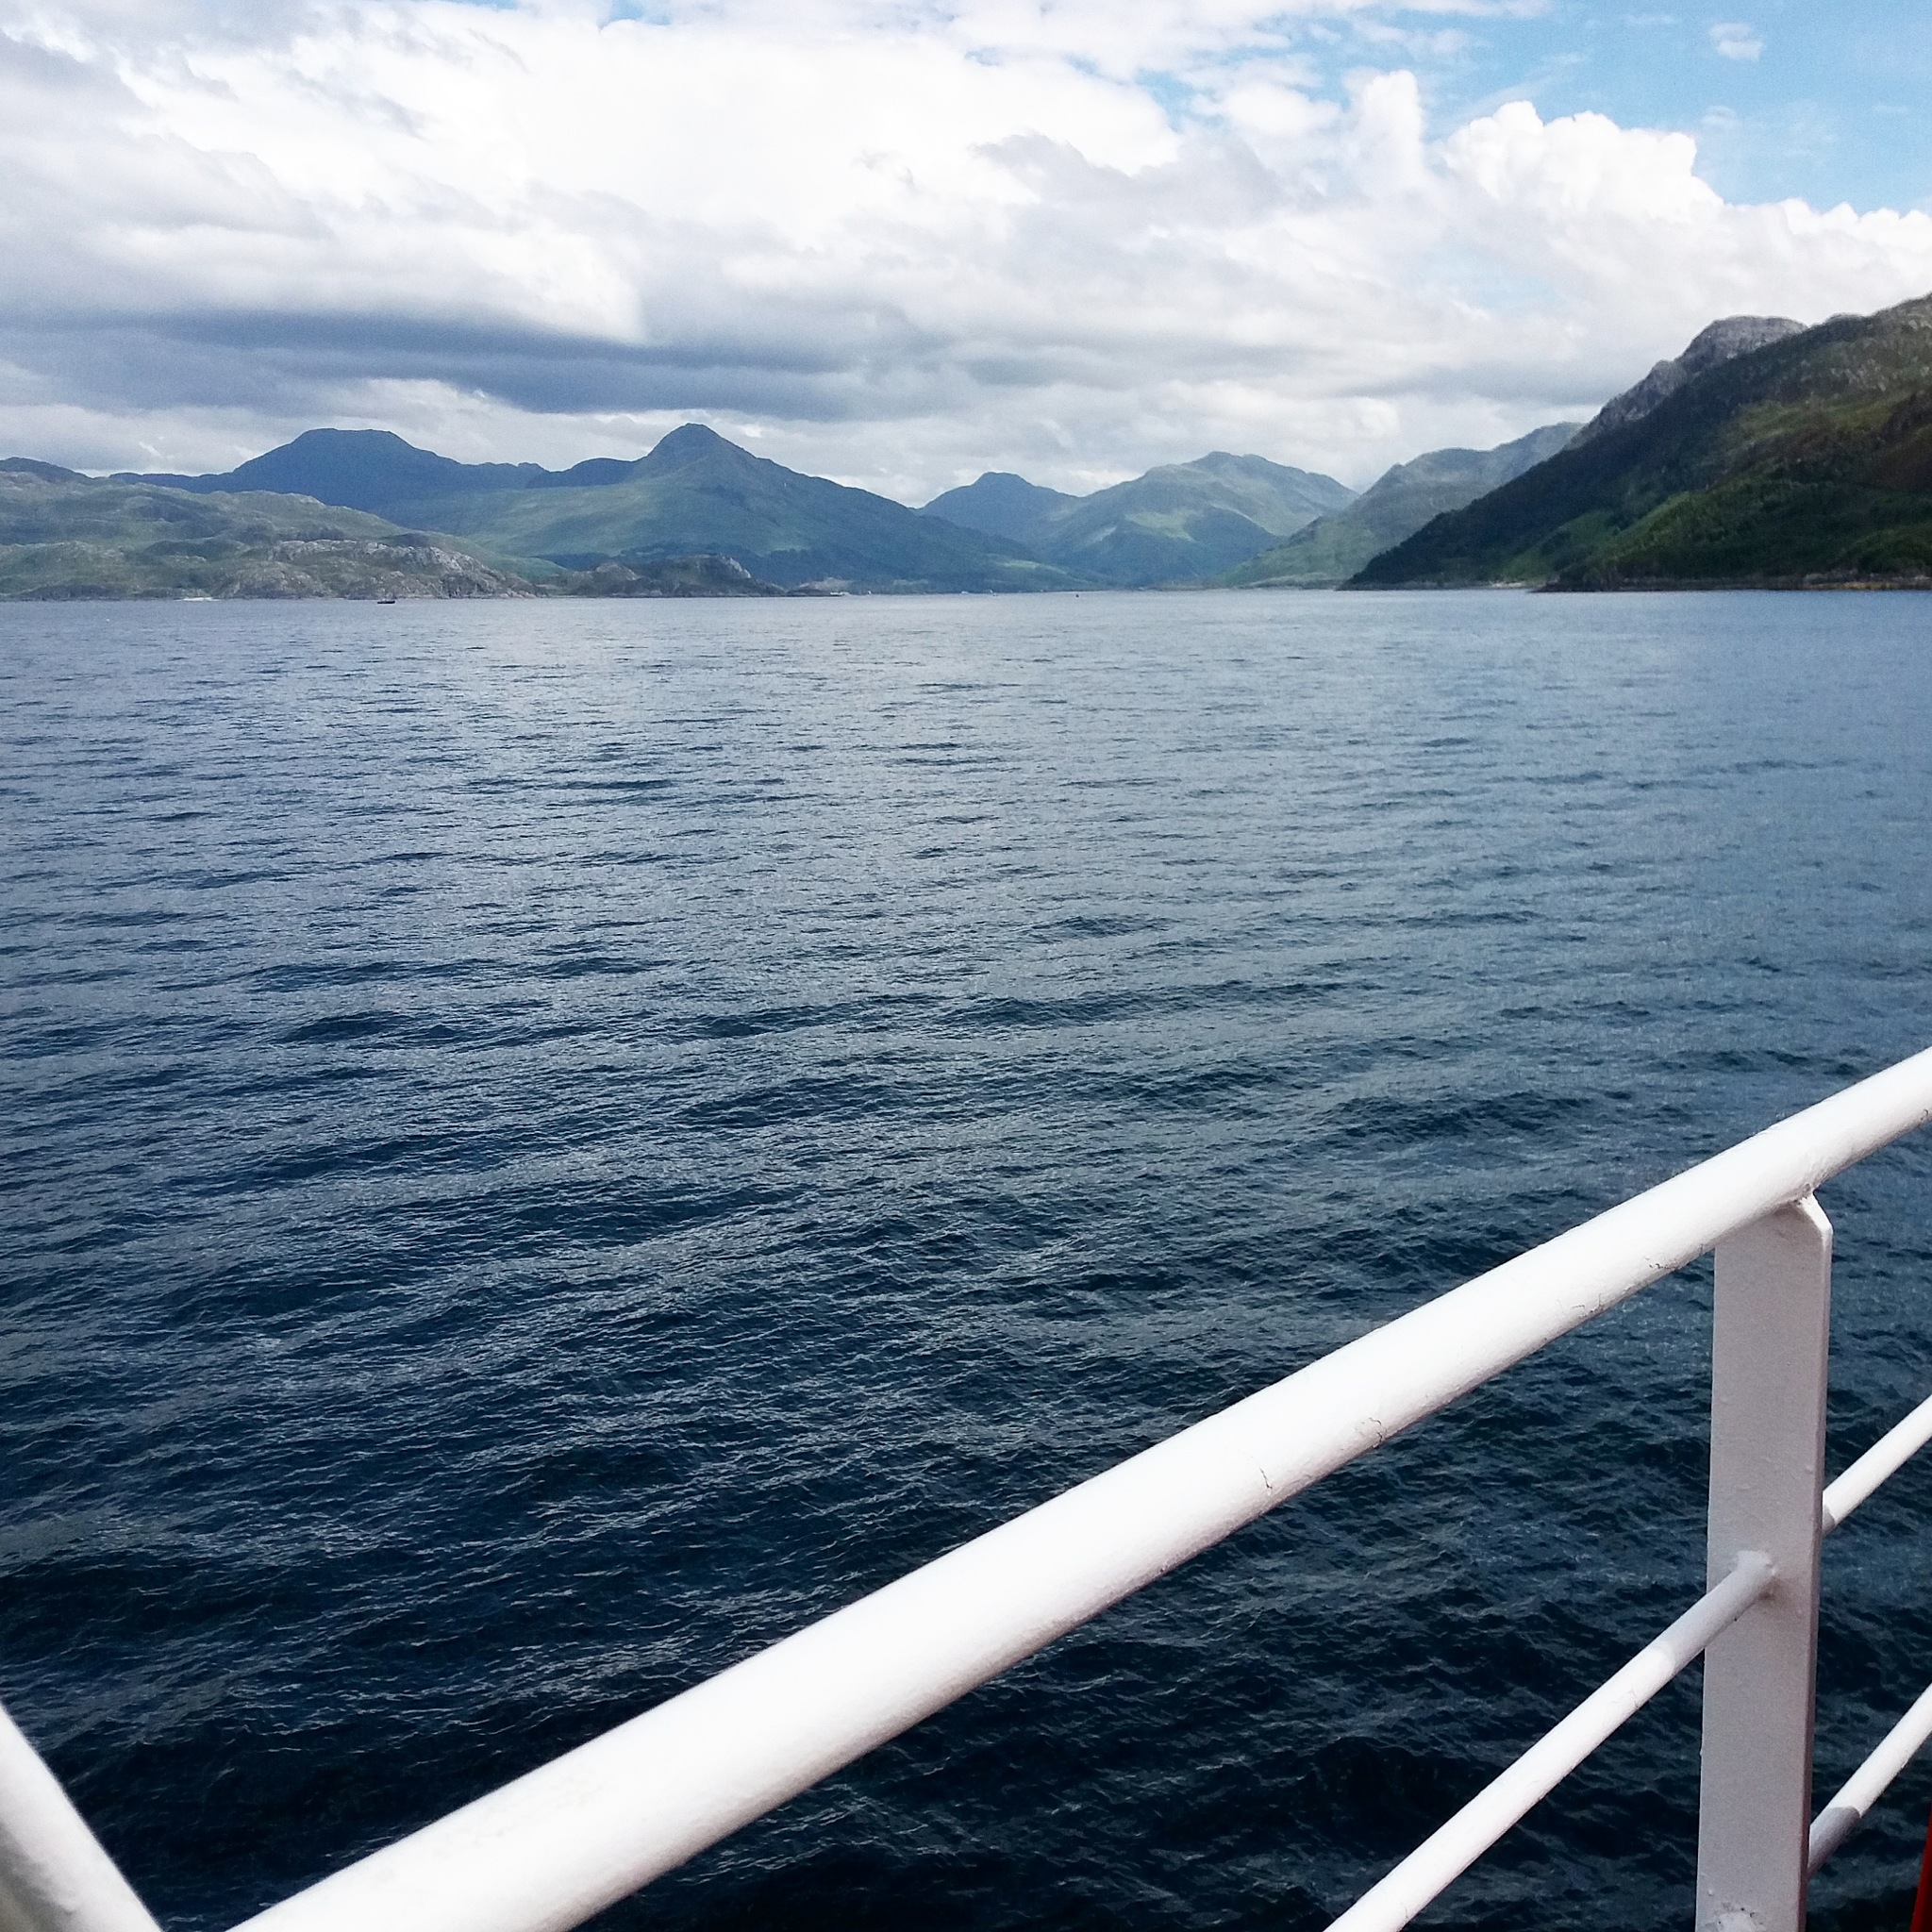 Today in our way from the Isle of Skye to Mallaig by geniesserle